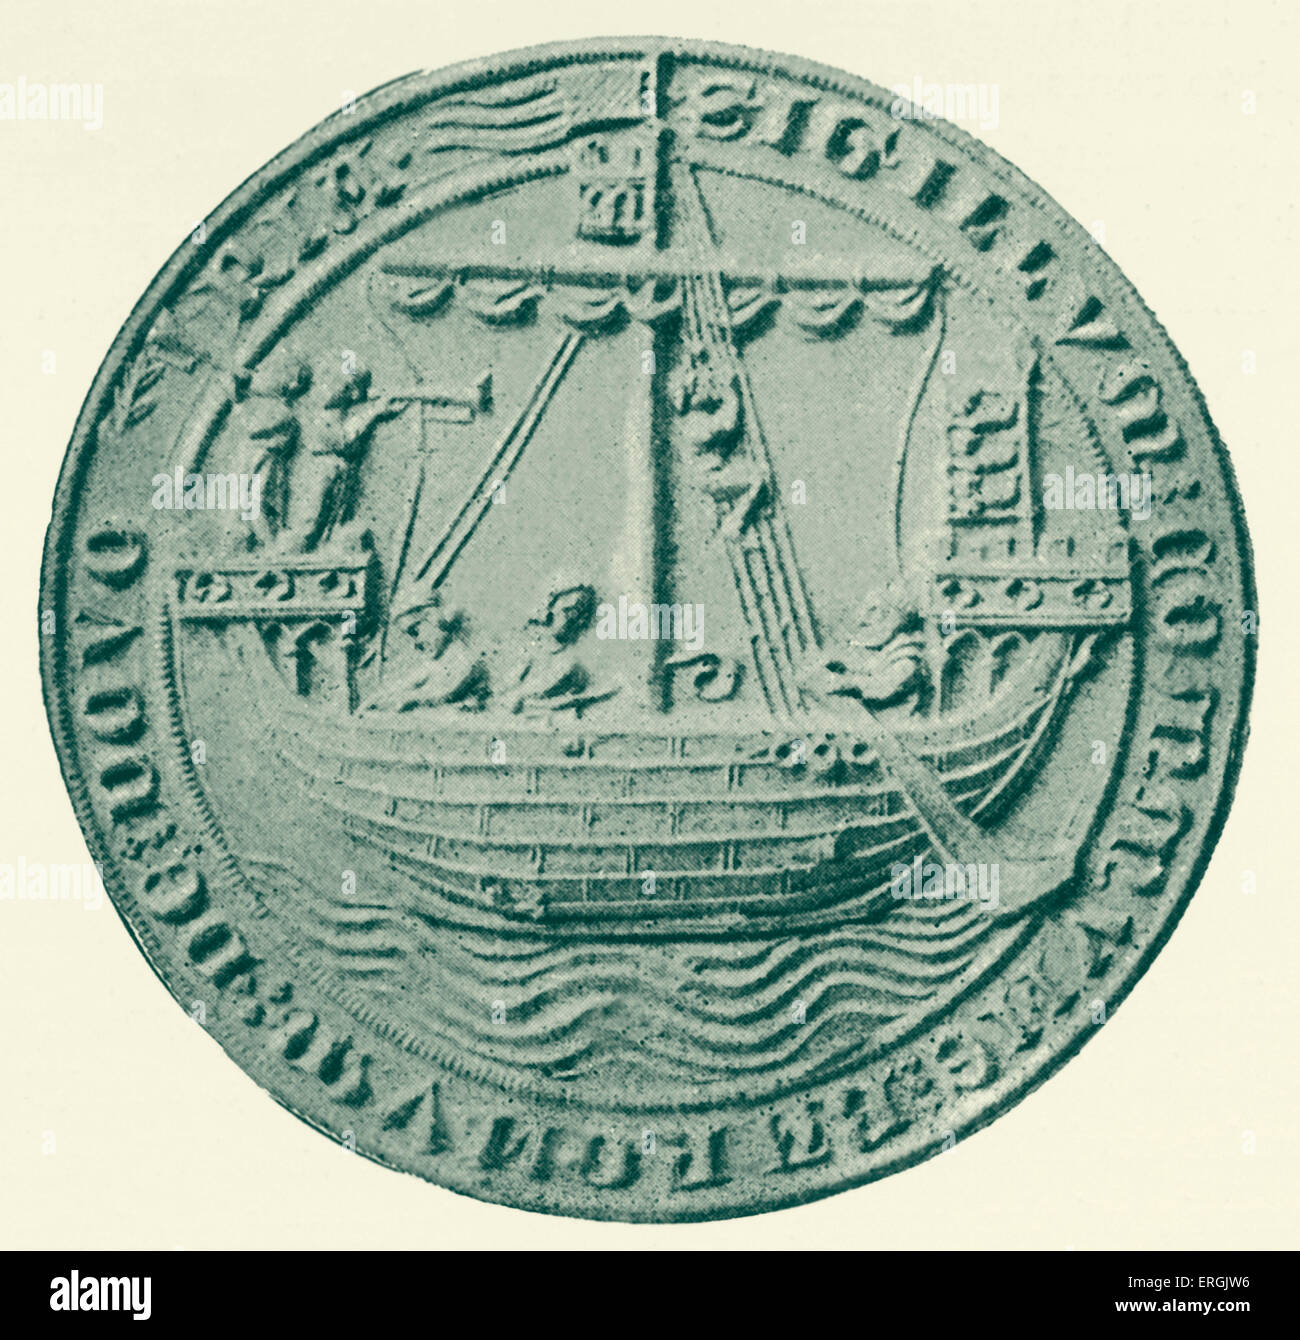 Seal of Dover,  1305. Reverse.  Coastal town in Kent, UK. Depicting a ship. - Stock Image